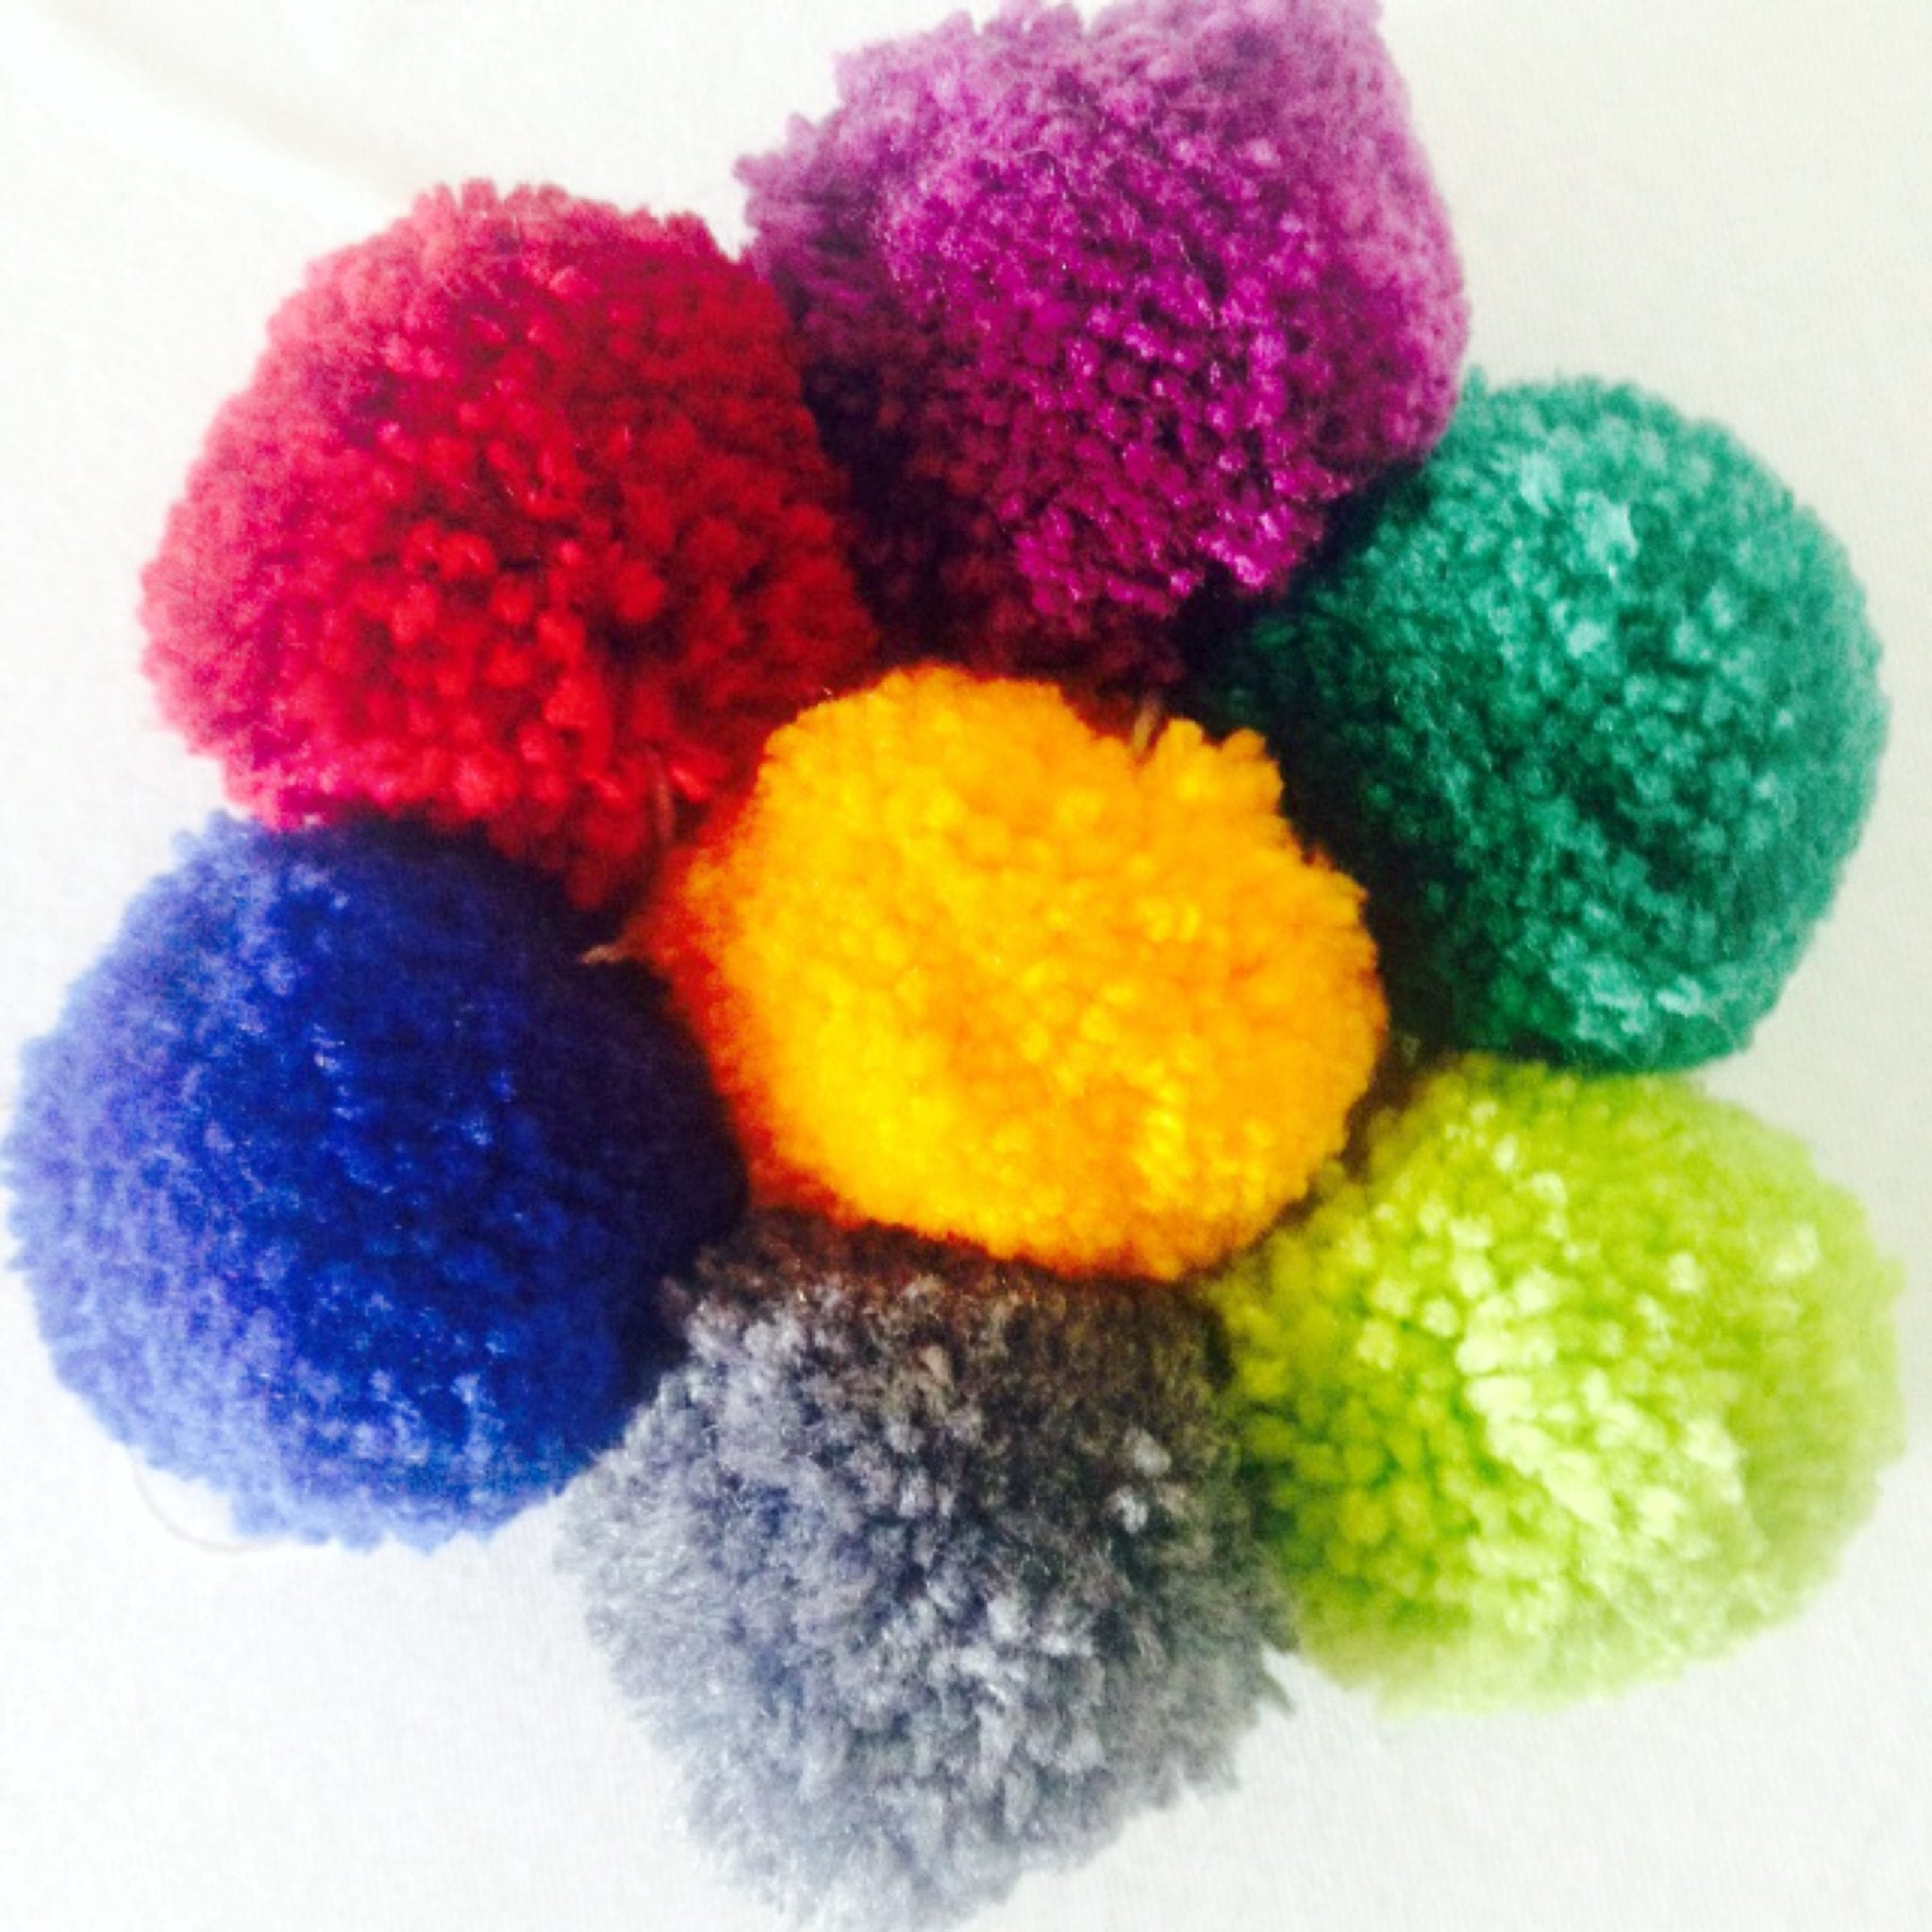 Pom Poms storm Rowheath craft fair